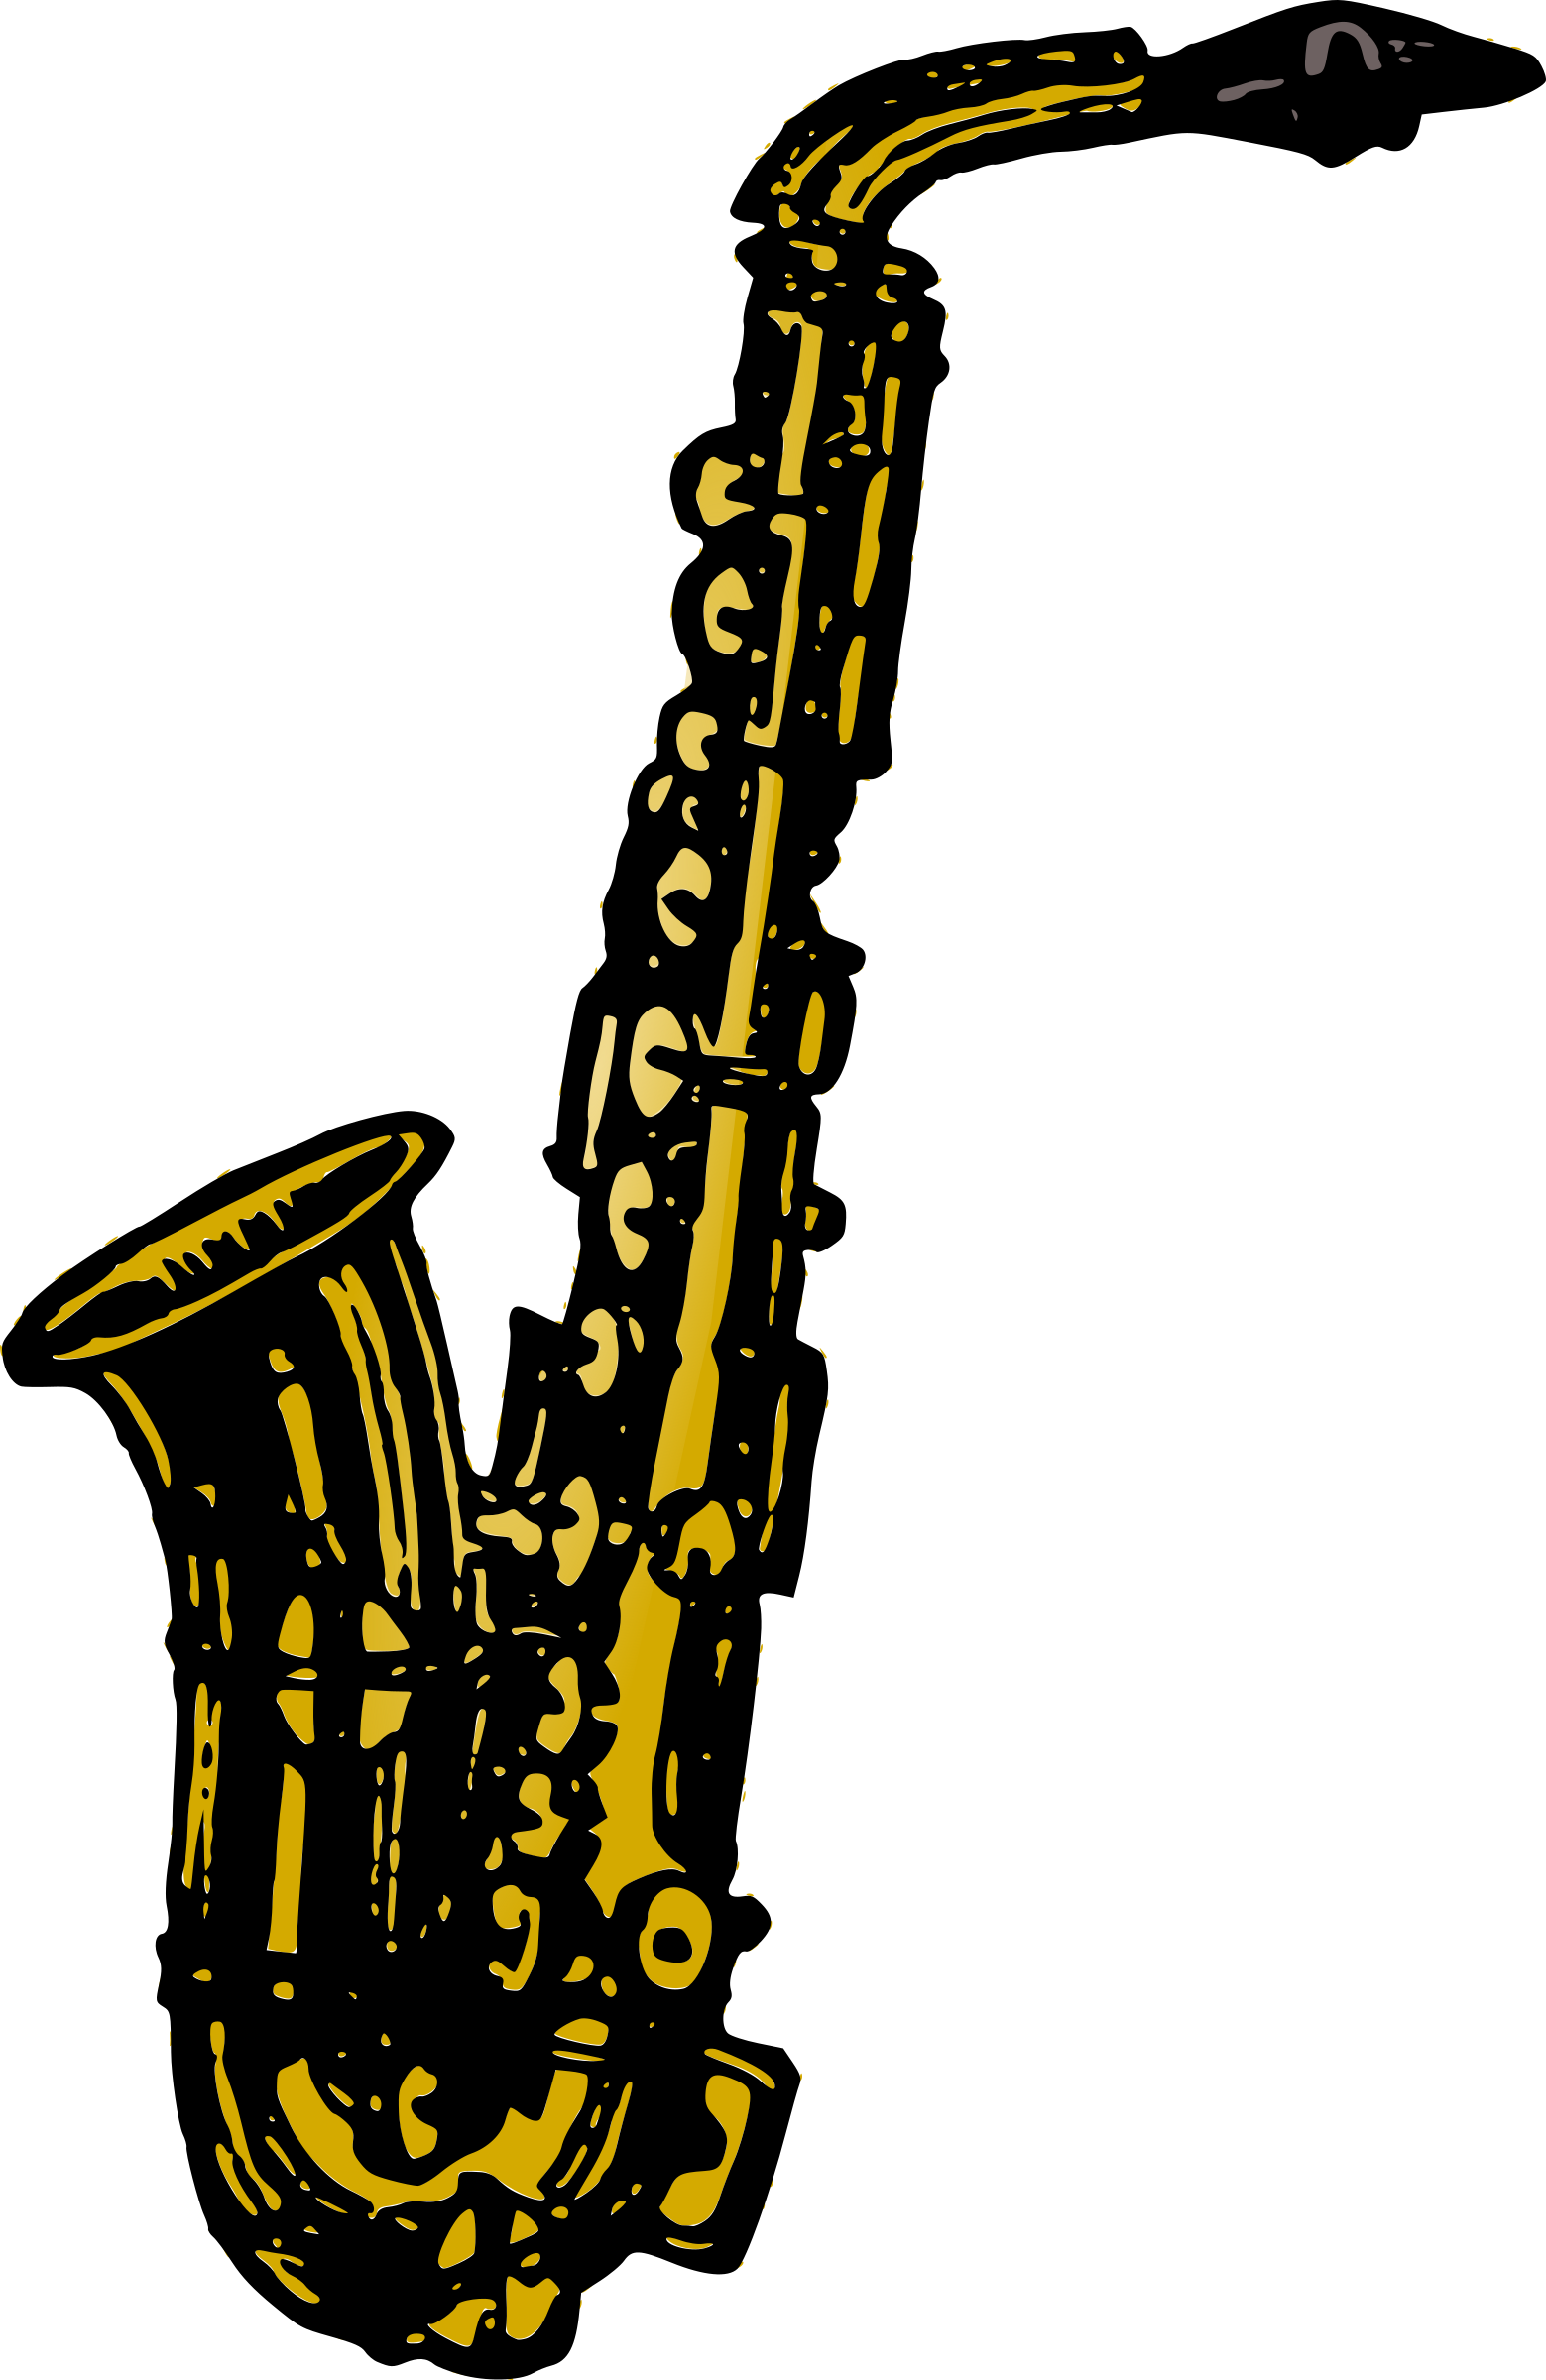 graphic download Basic big image png. Saxophone clipart